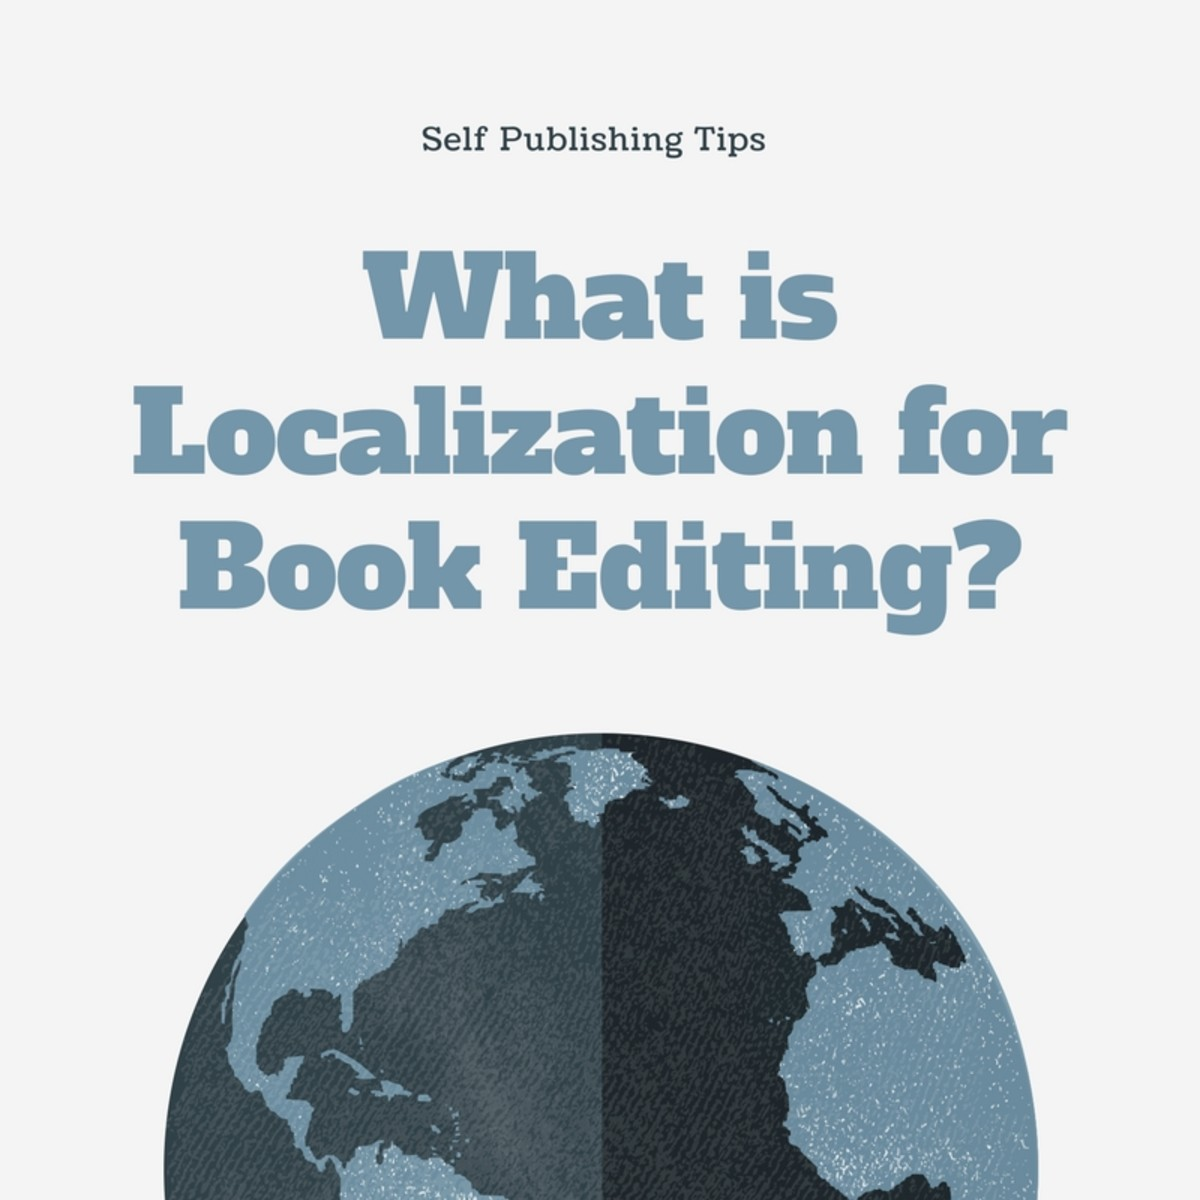 Learn more about localization and its benefits for authors.